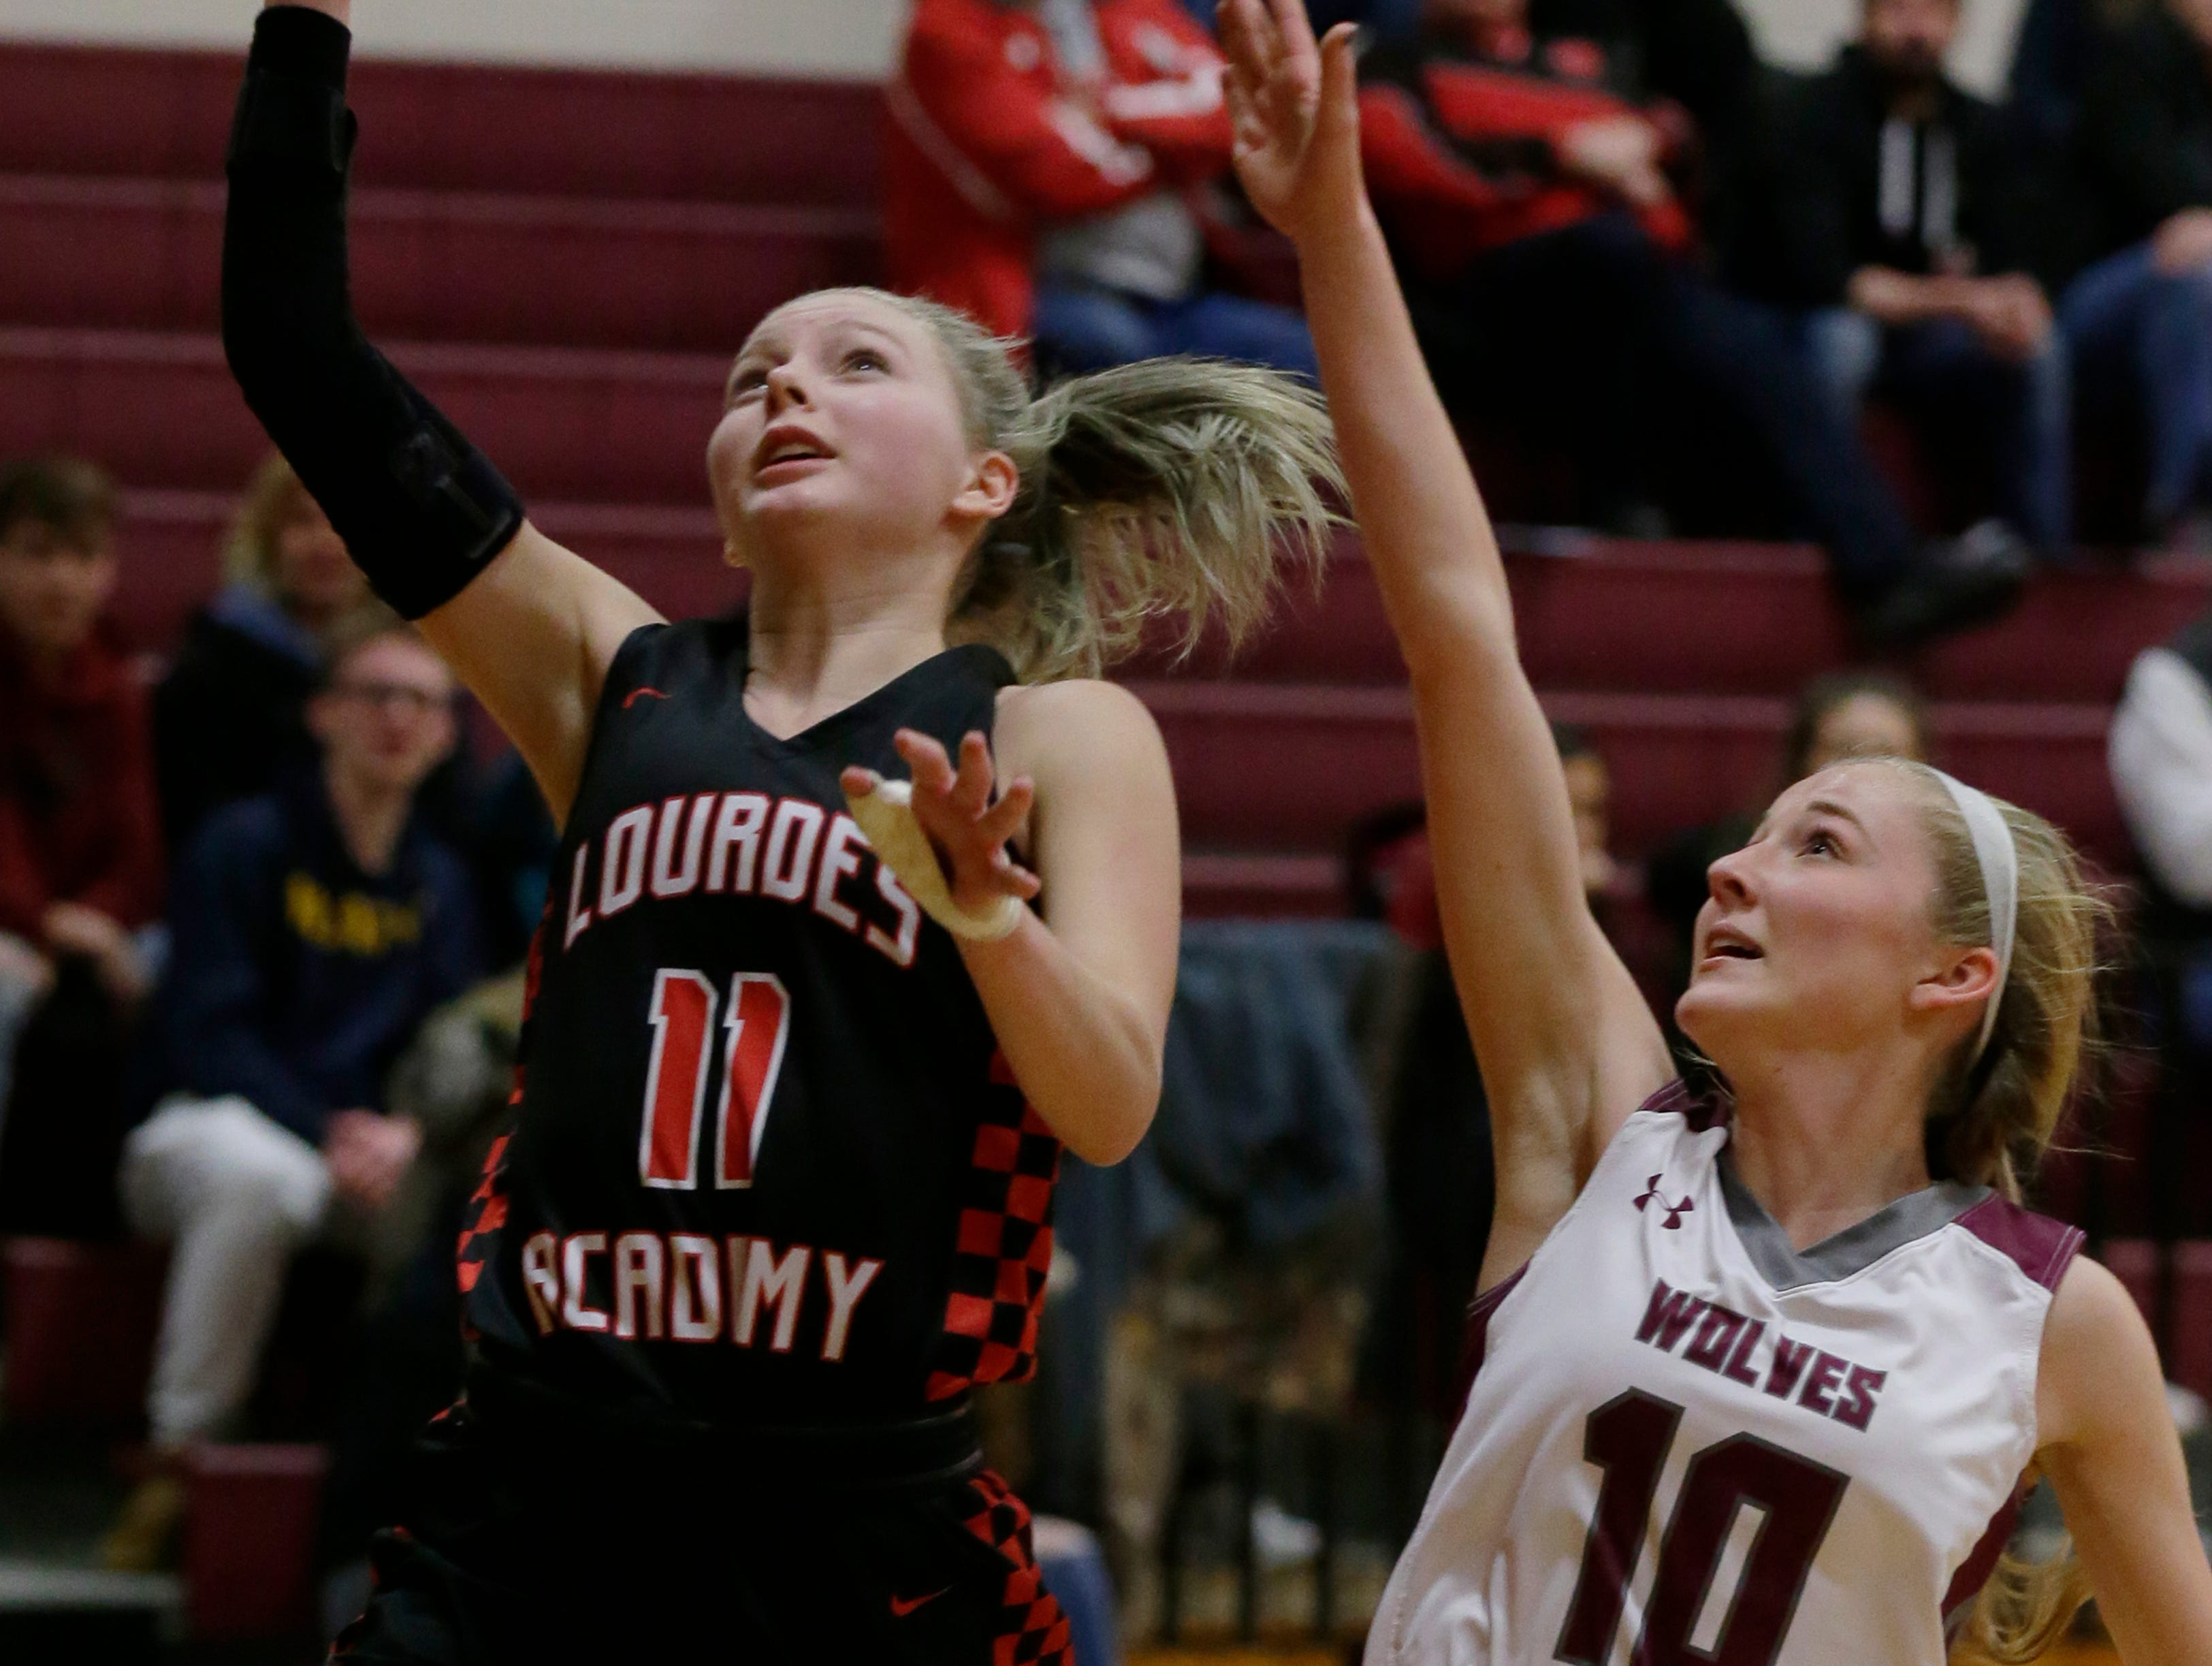 Lourdes Academy's Alexis Rolph goes in for a layup past Winneconne's Emily Heyroth.  Winneconne Wolves played Lourdes Academy Knights, Tuesday, Dec. 11, 2018. Winneconne won 56 - 44.